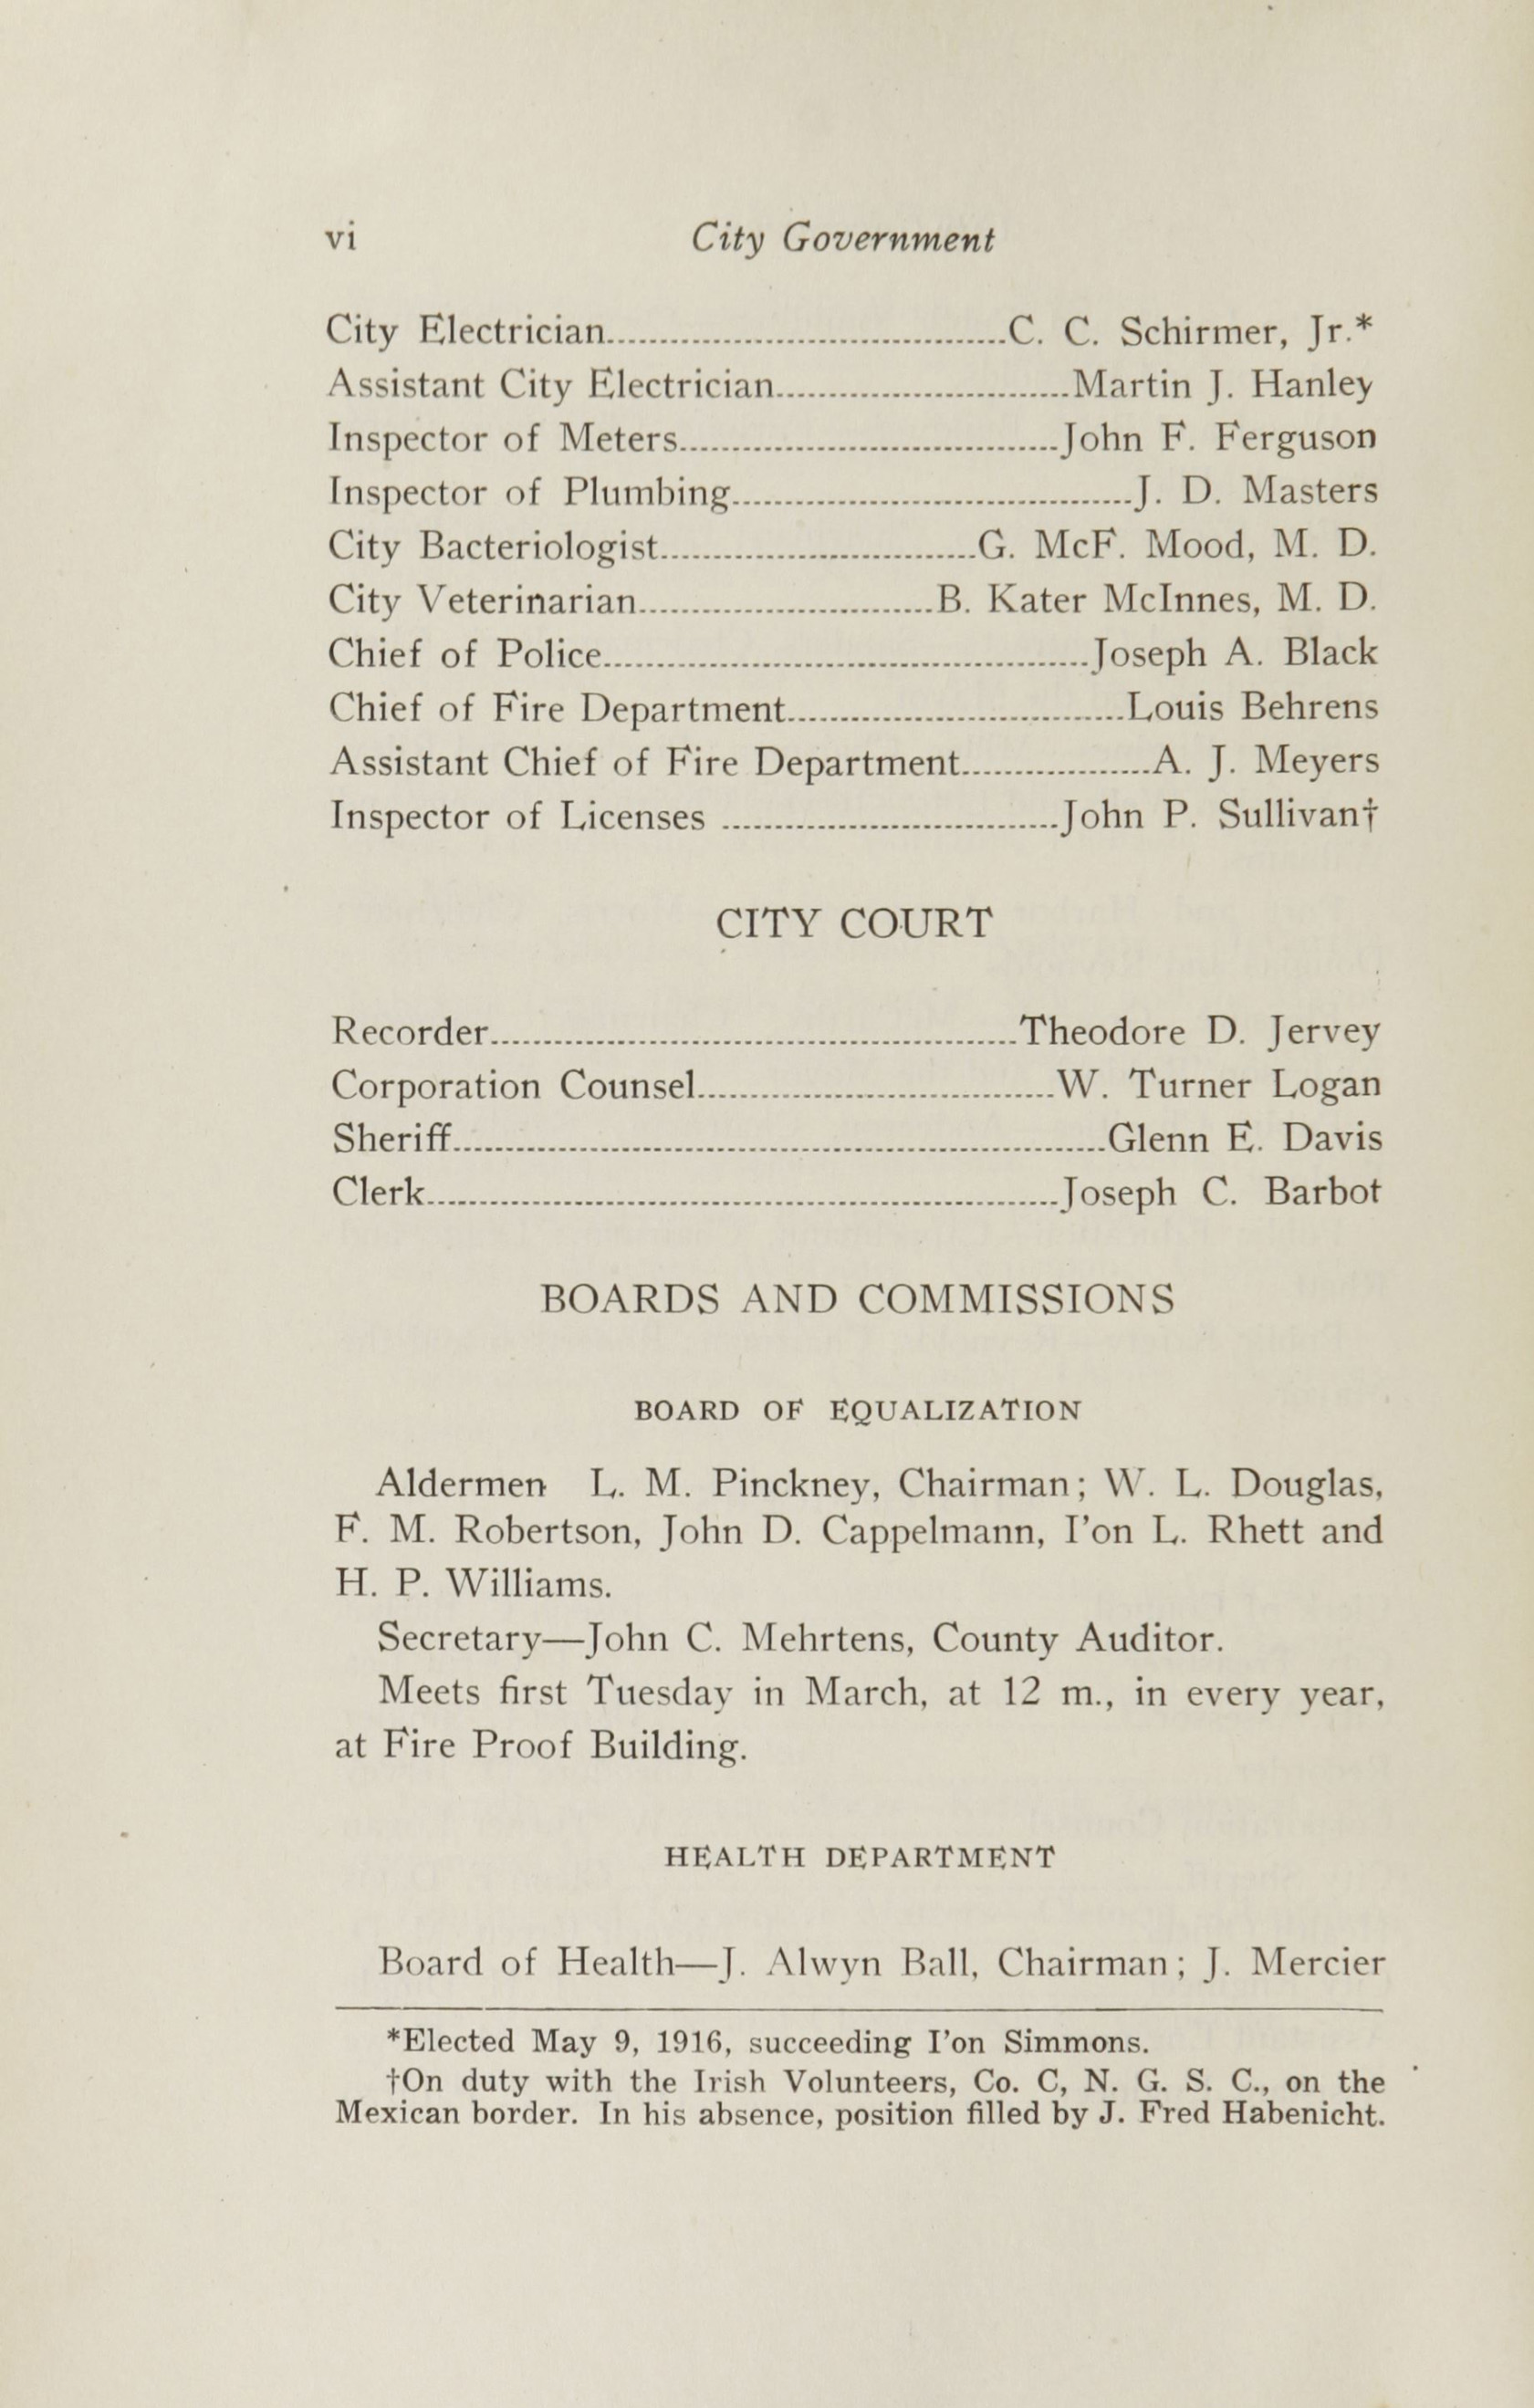 Charleston Yearbook, 1916, page vi